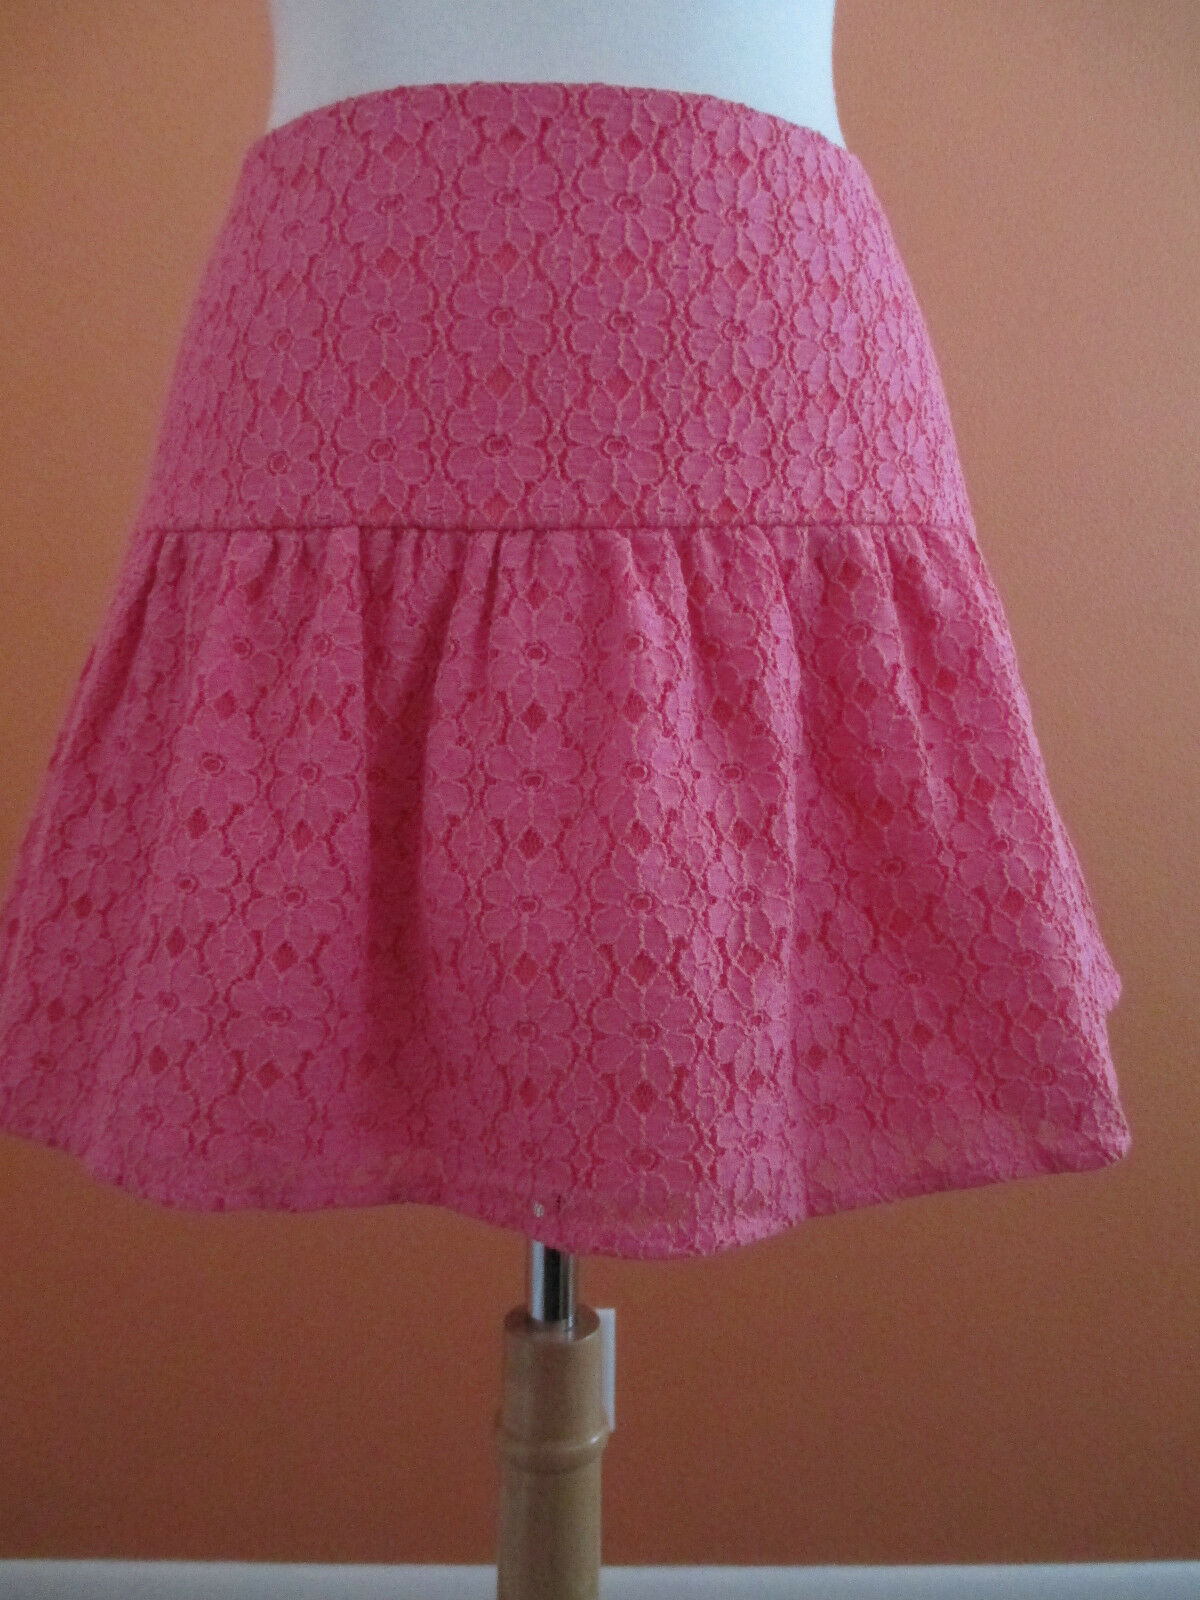 New Lilly Pulitzer Size 8 Hotty Pink Earna Daisy Lace Mini Skirt